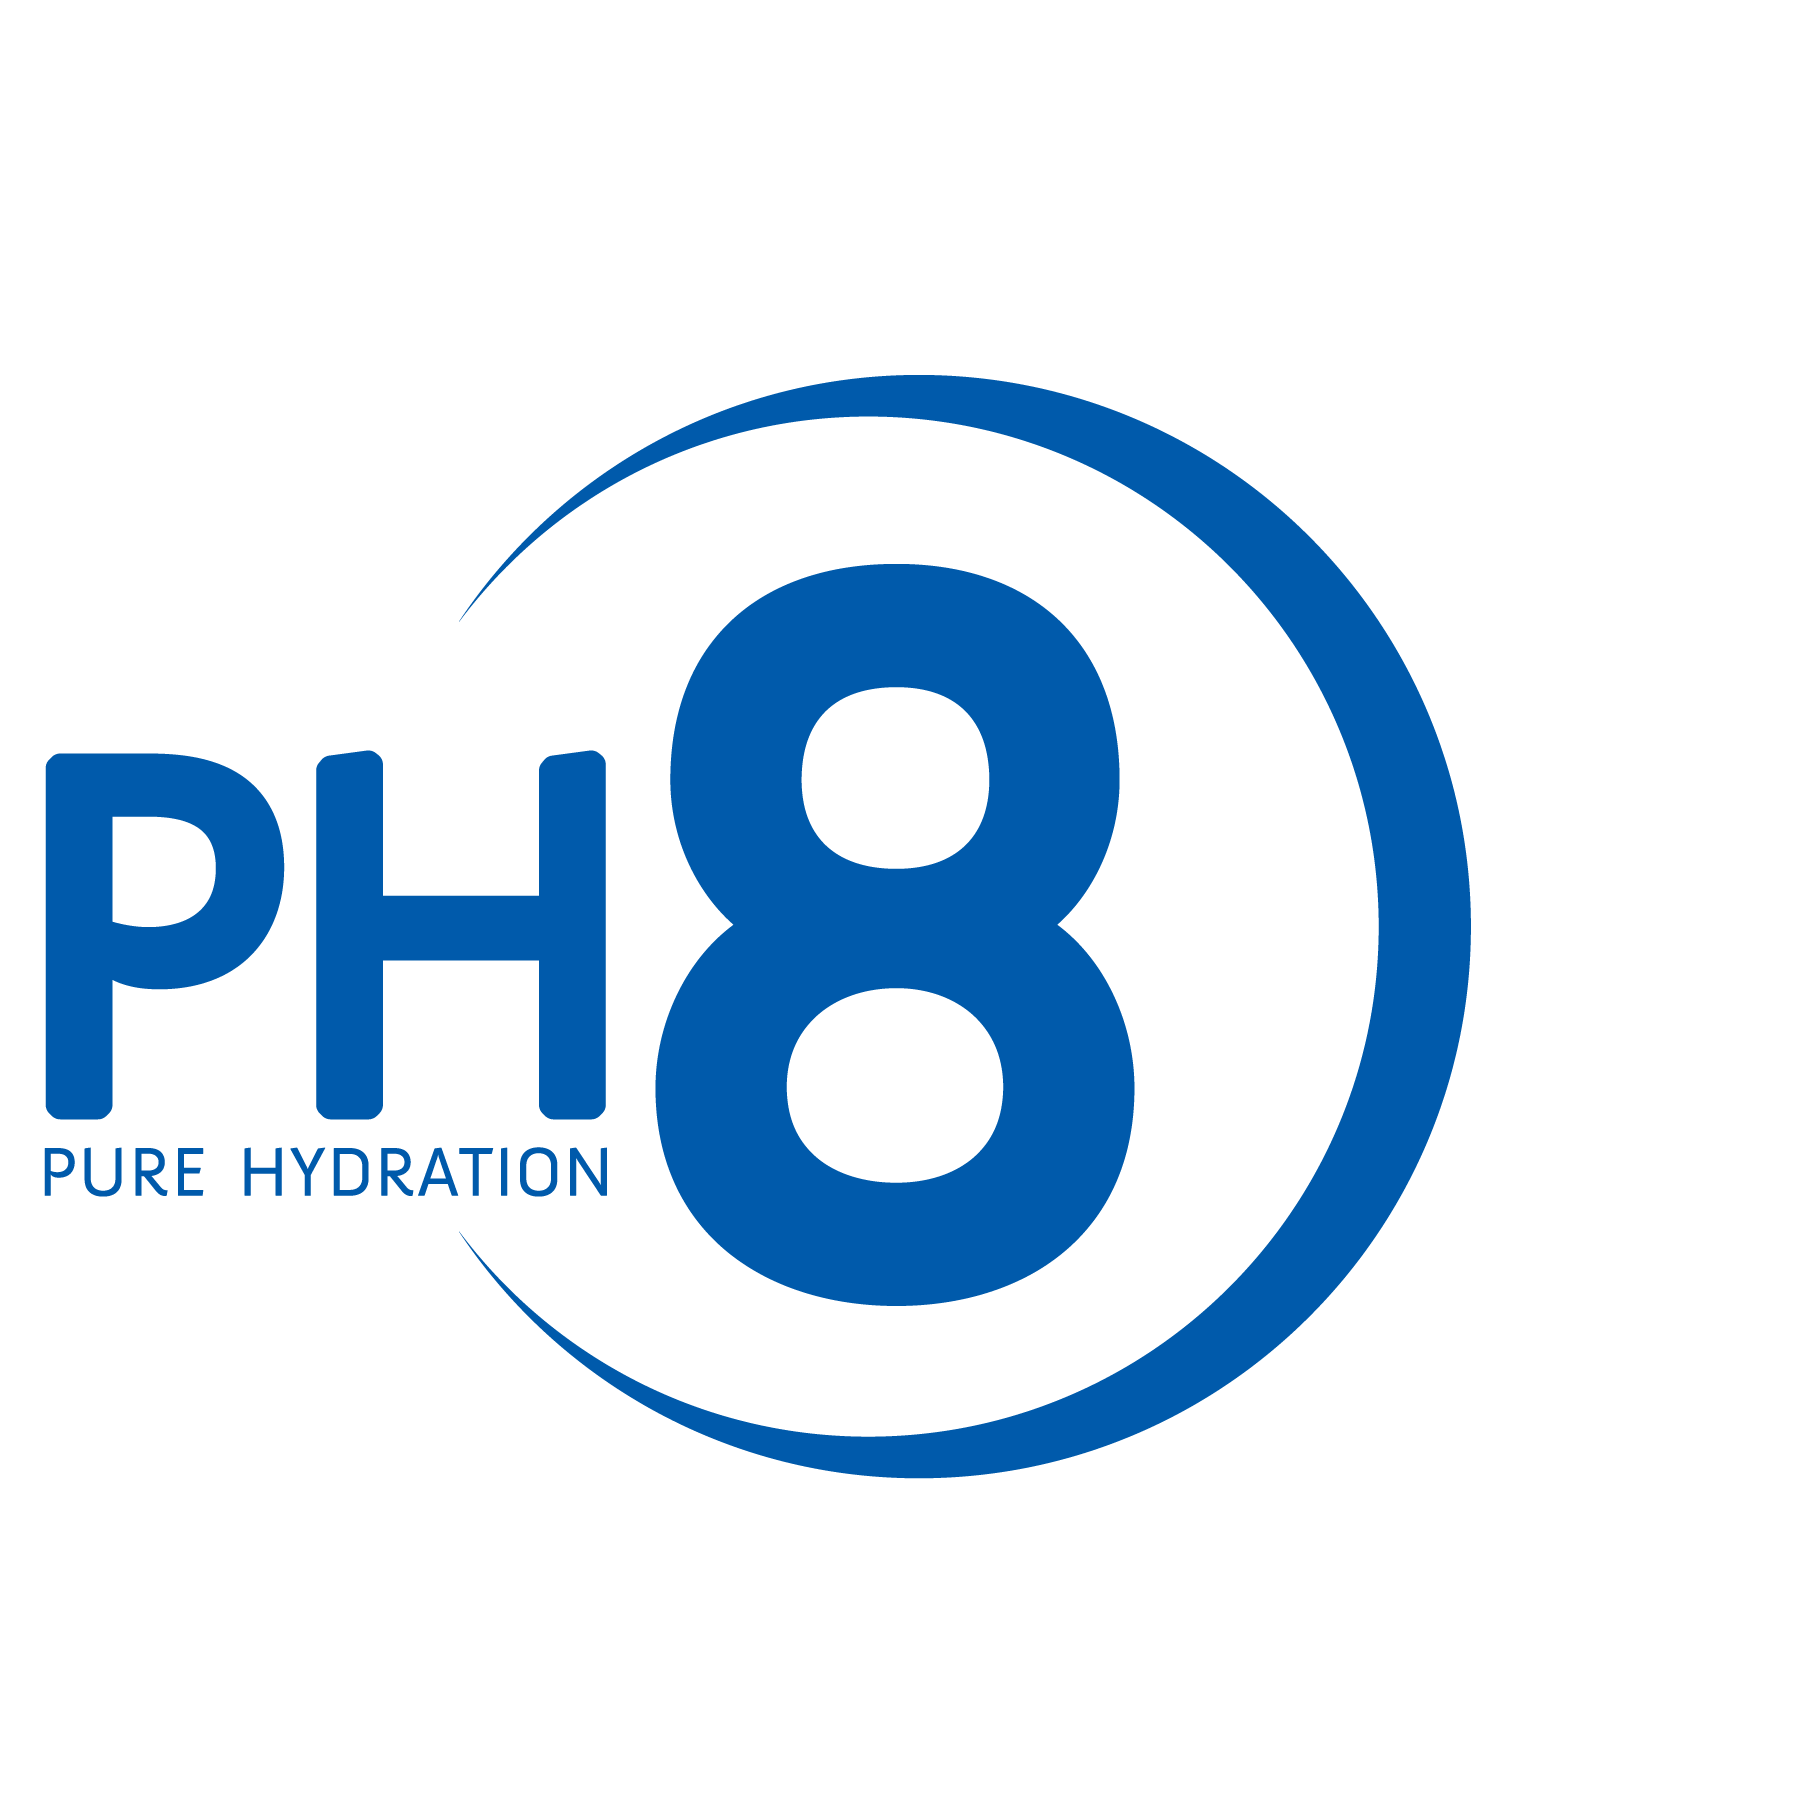 PH8 Logo with glow